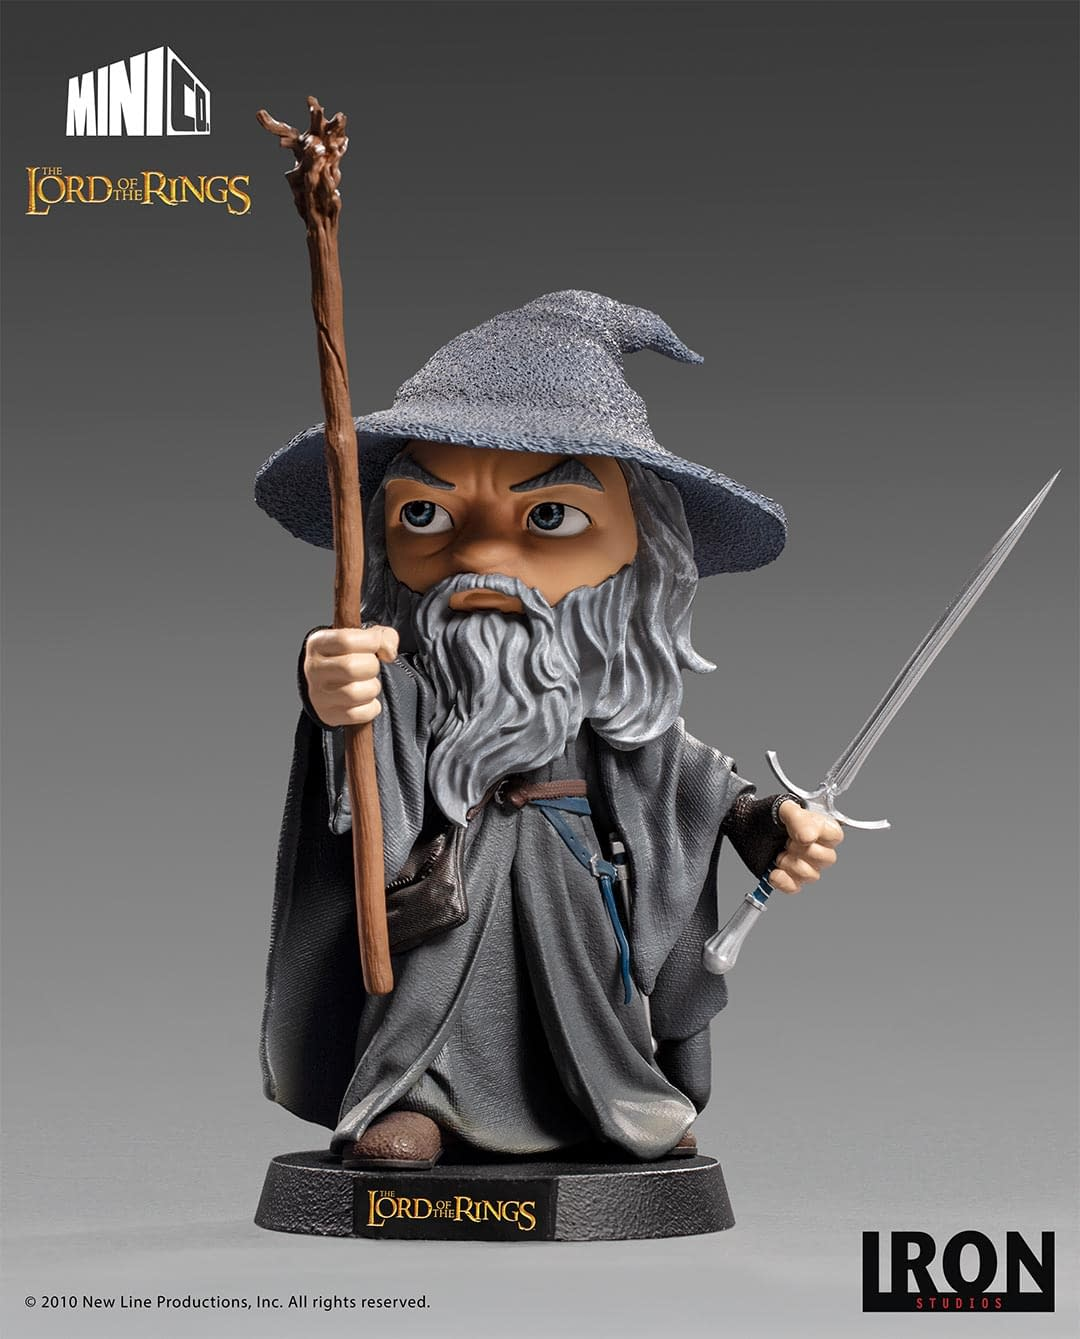 Iron Studios Lord of the Rings Minico Statue Frodo Baggins with backgroud, photo from Iron Studios Gandalf the Grey